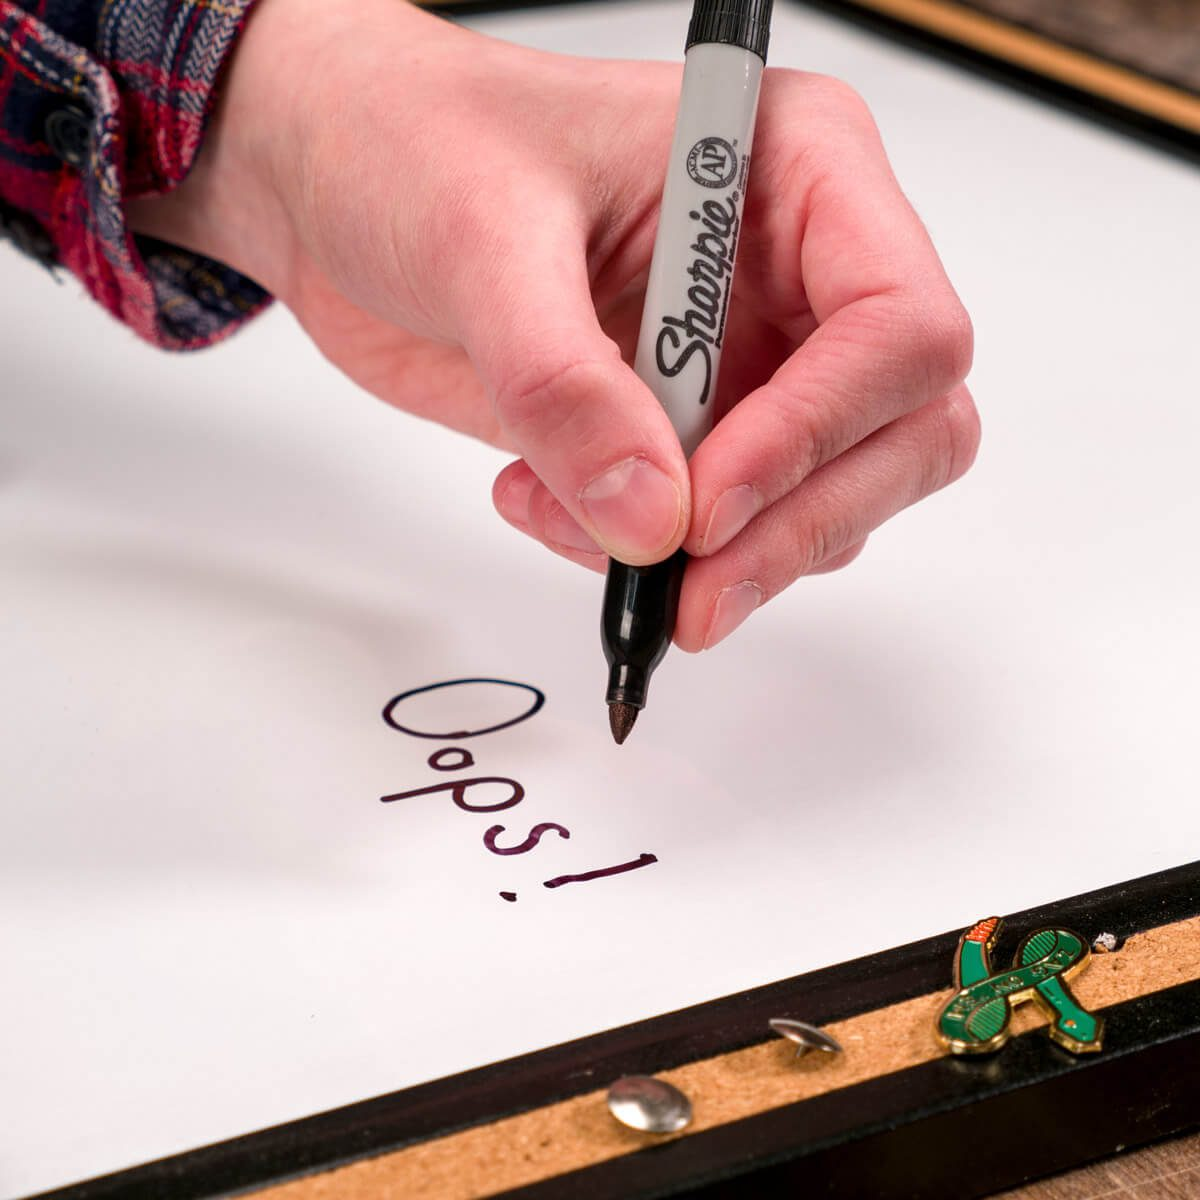 How To Remove Sharpie From Countertop 10 Clever Ways To Remove Permanent Marker From Any Surface The